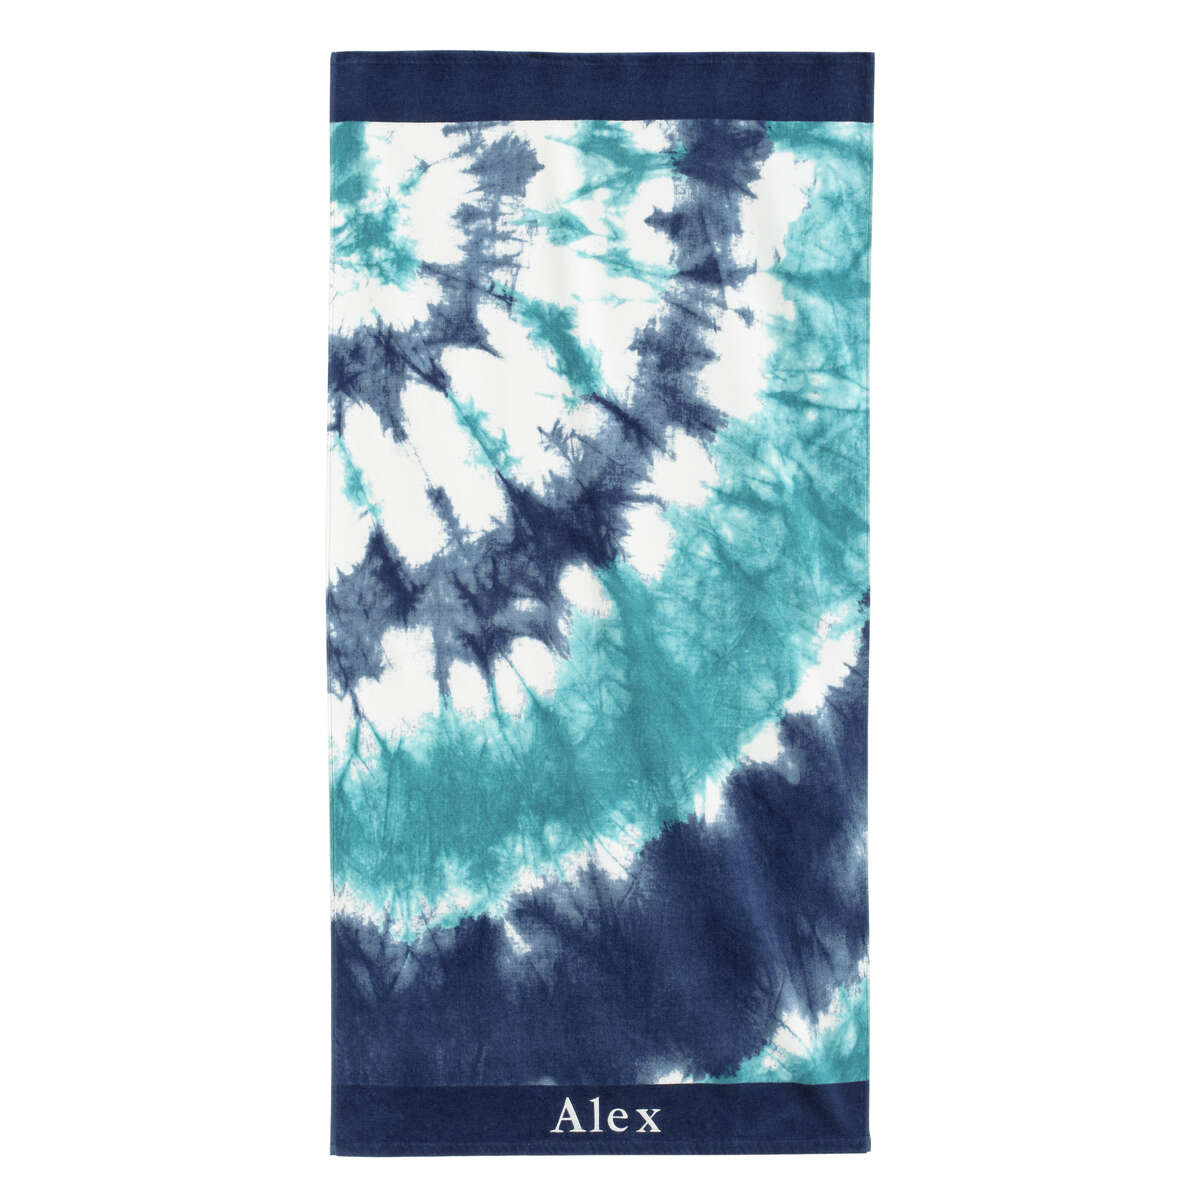 This product image released by Pottery Barn Teen shows a tie dye beach towel in blue. Pottery Barn Teen has towels with surfer-cool designs like hibiscus flowers, Tiki prints and tie-dye patterns in summery hues, as well as sporty towels for baseball fans, with team logos. (AP Photo/Pottery Barn Teen)